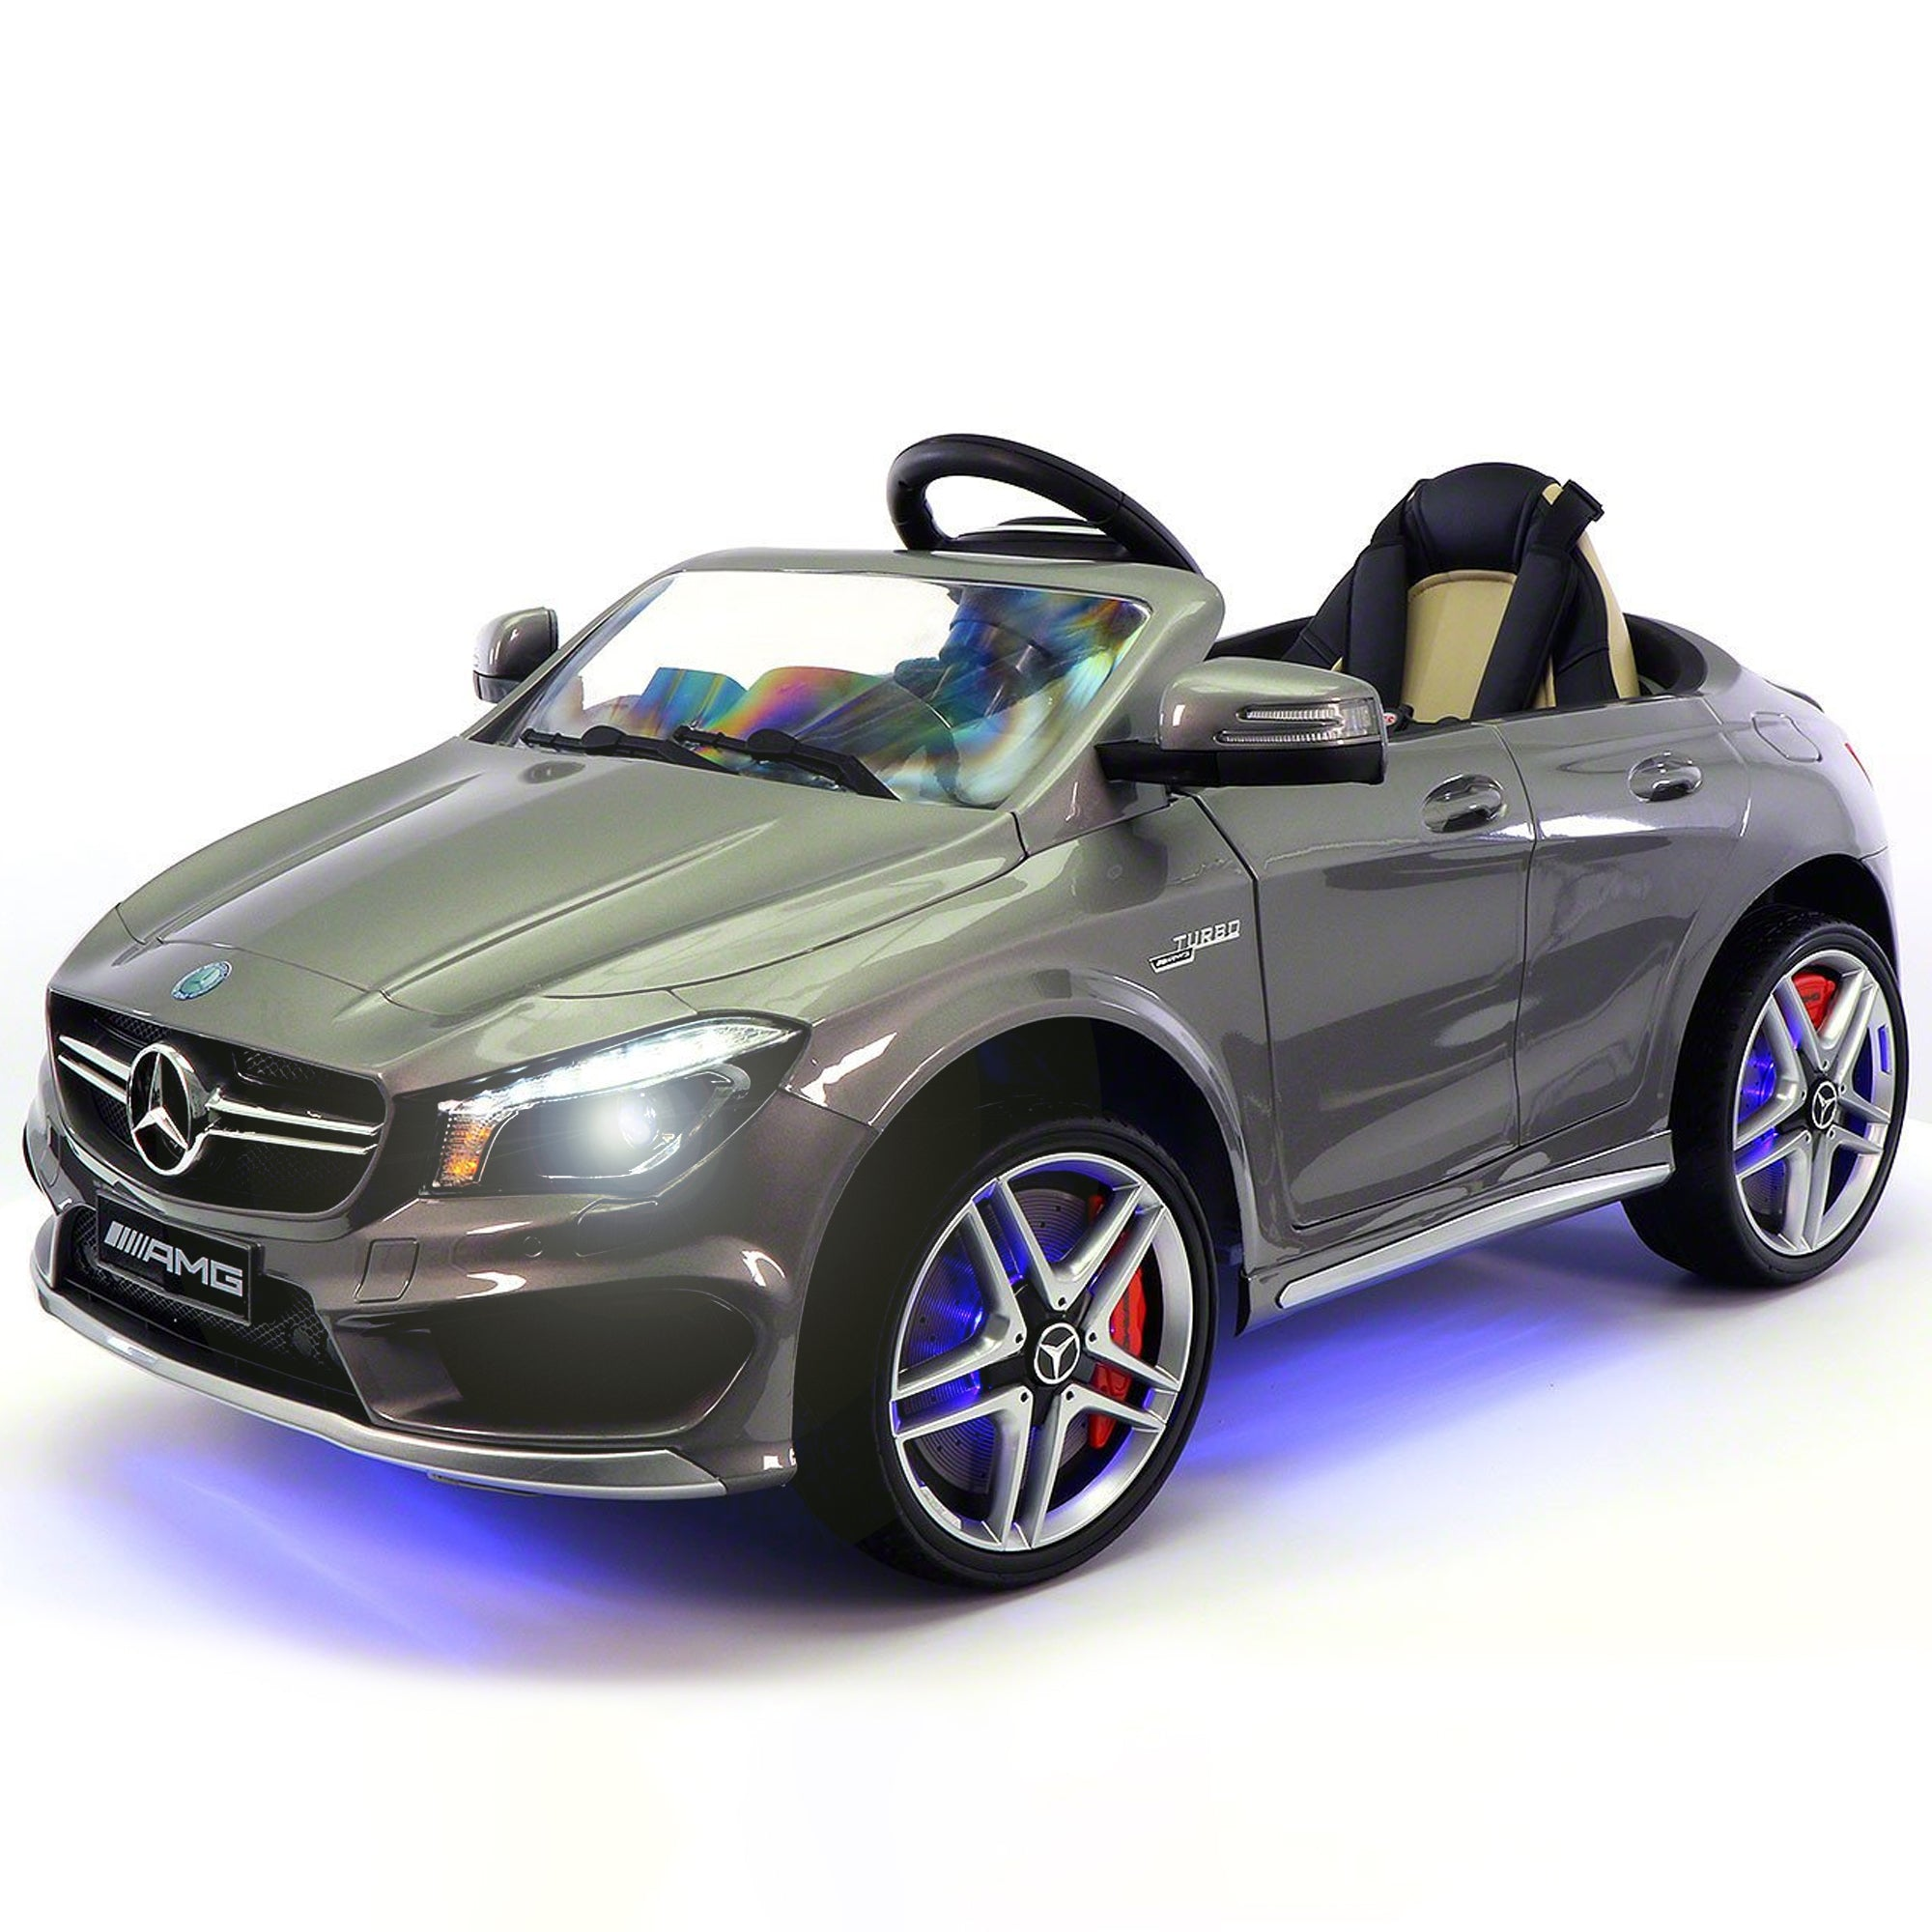 2019 Mercedes Benz CLA 12V Ride On Car for Kids | 12V Engine Power Licensed Kid Car to Drive with Remote, Dining Table, Leather Seat, Openable Doors, LED Lights - Silver - Jay Goodys